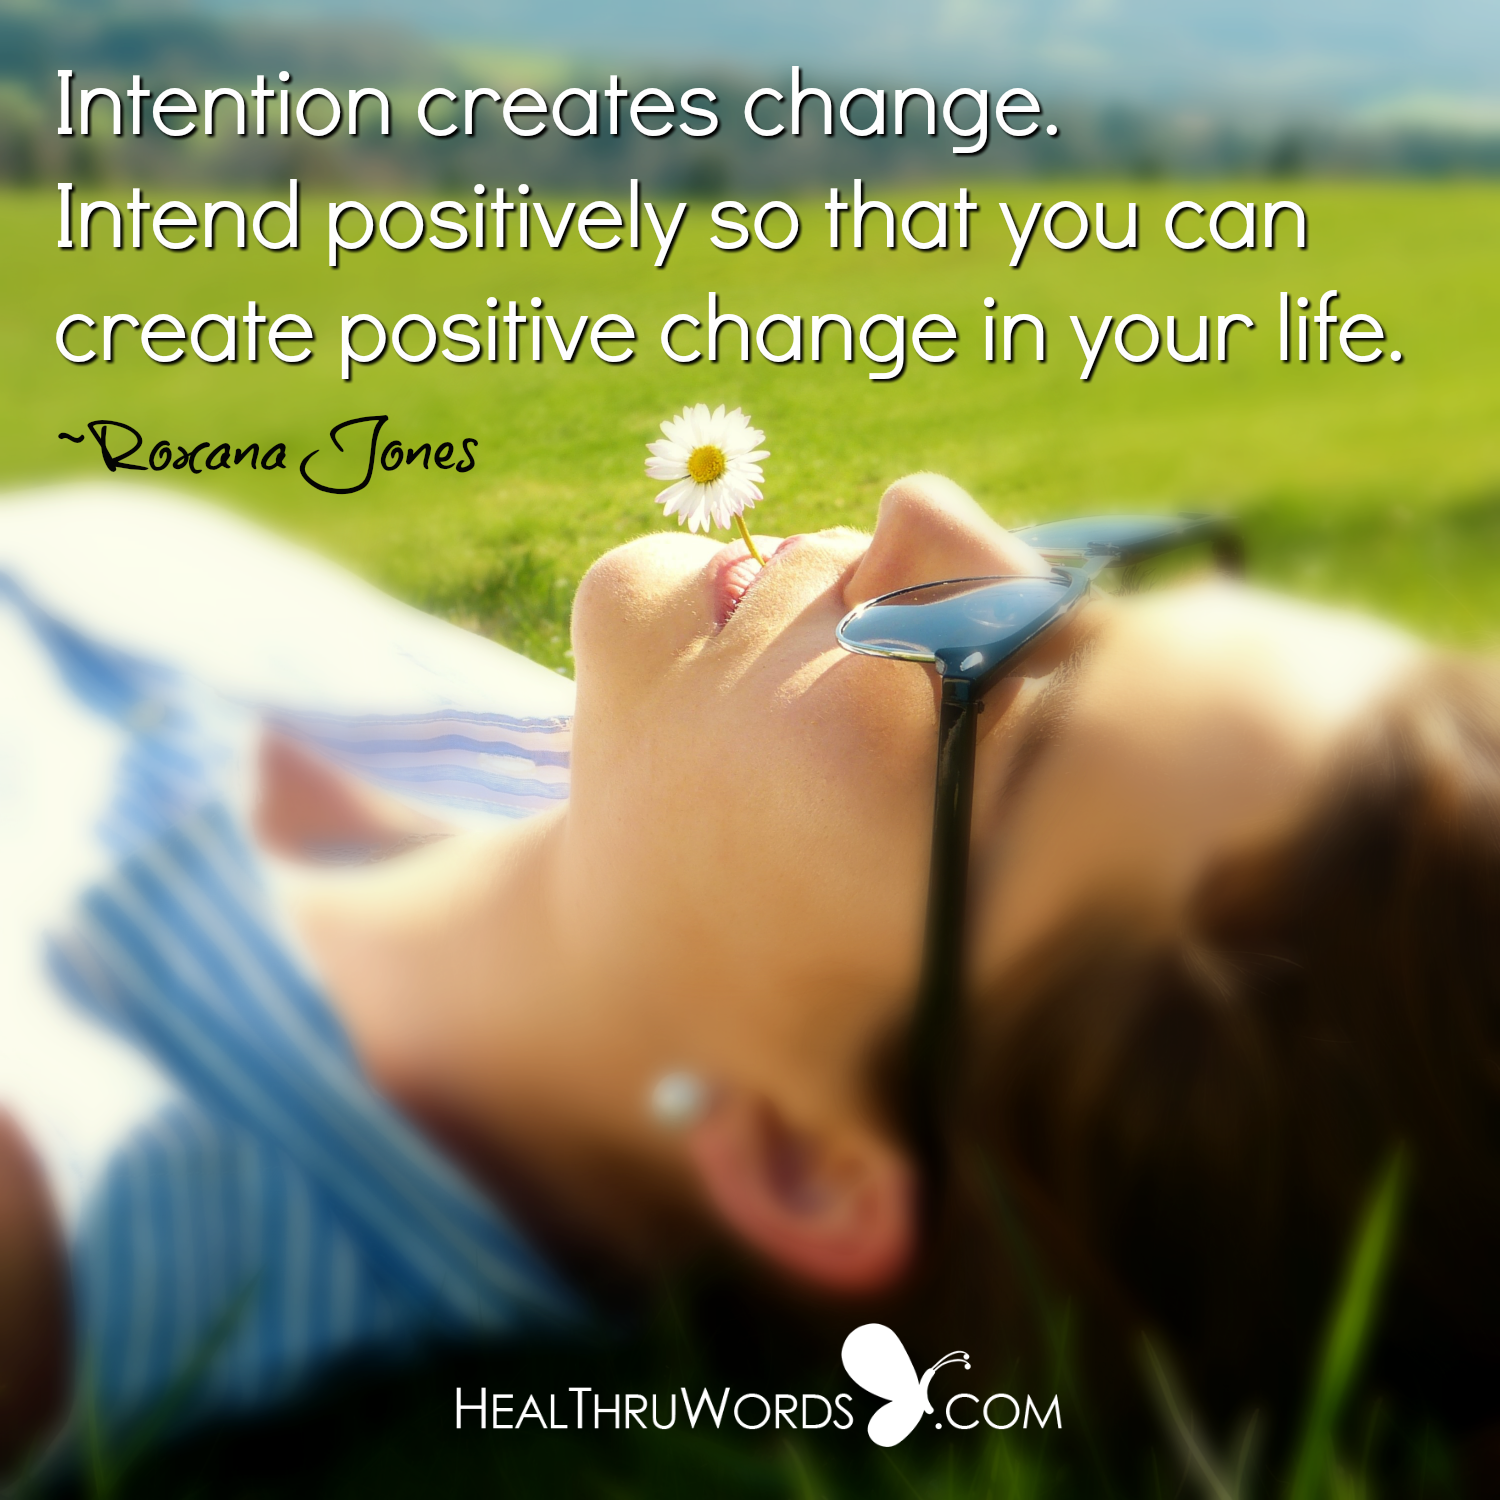 Inspirational Image: Positive Intentions